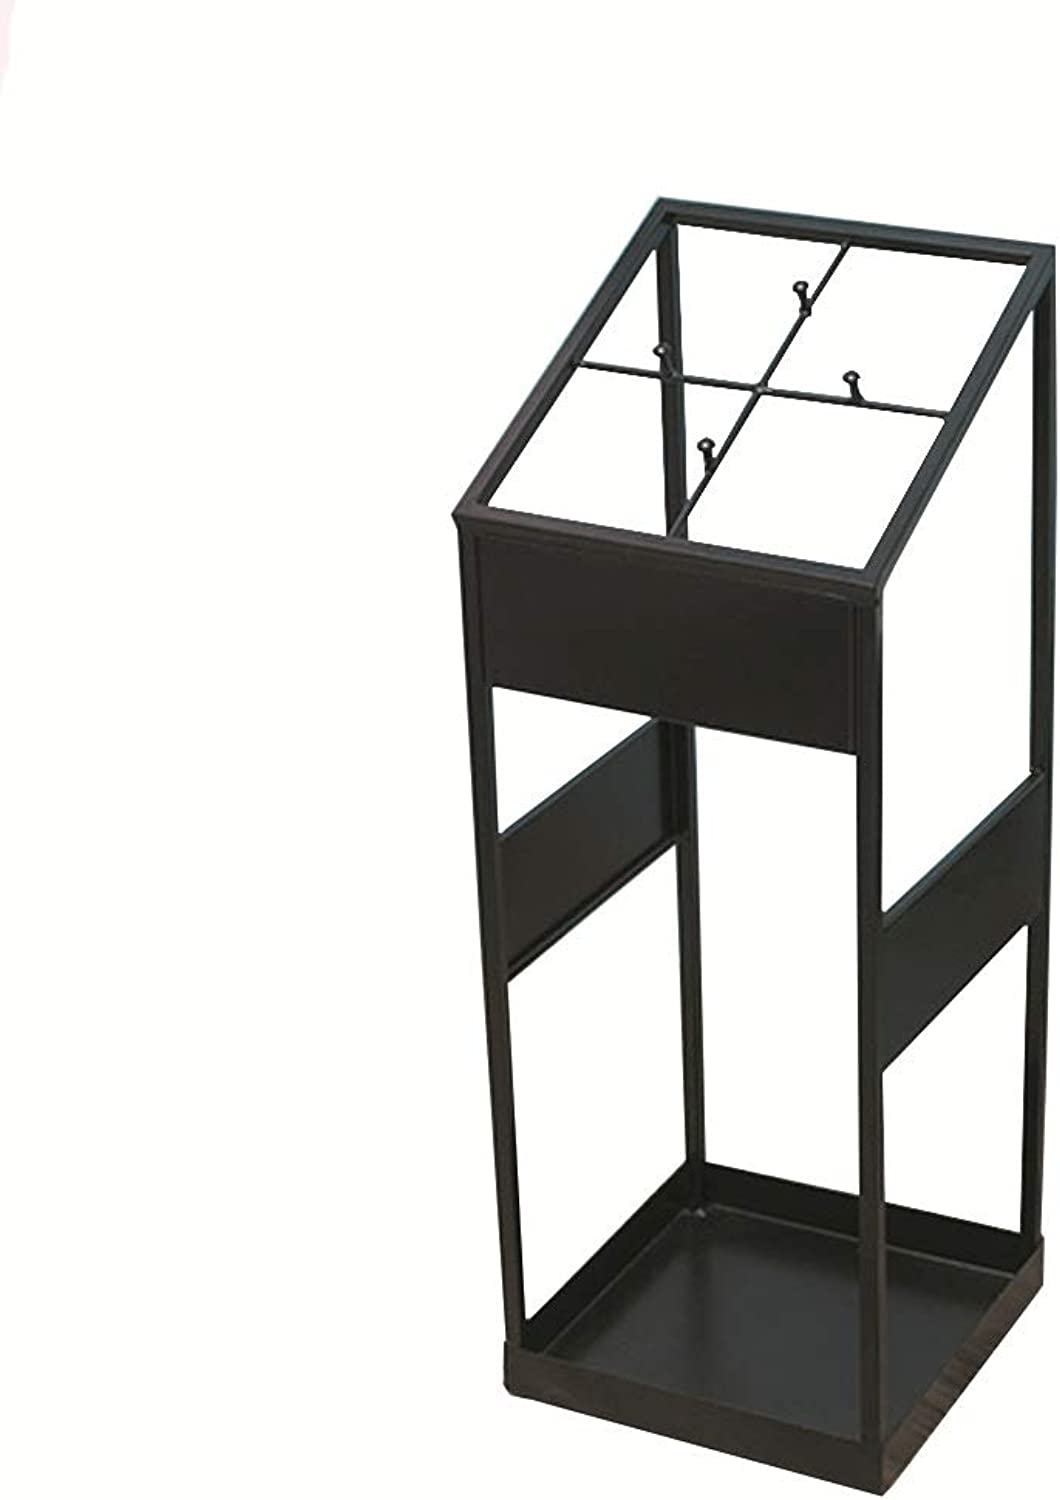 Umbrella Stand Home Black Wrought Iron Square Umbrella Storage for The Entrance Hall Hotel-etc